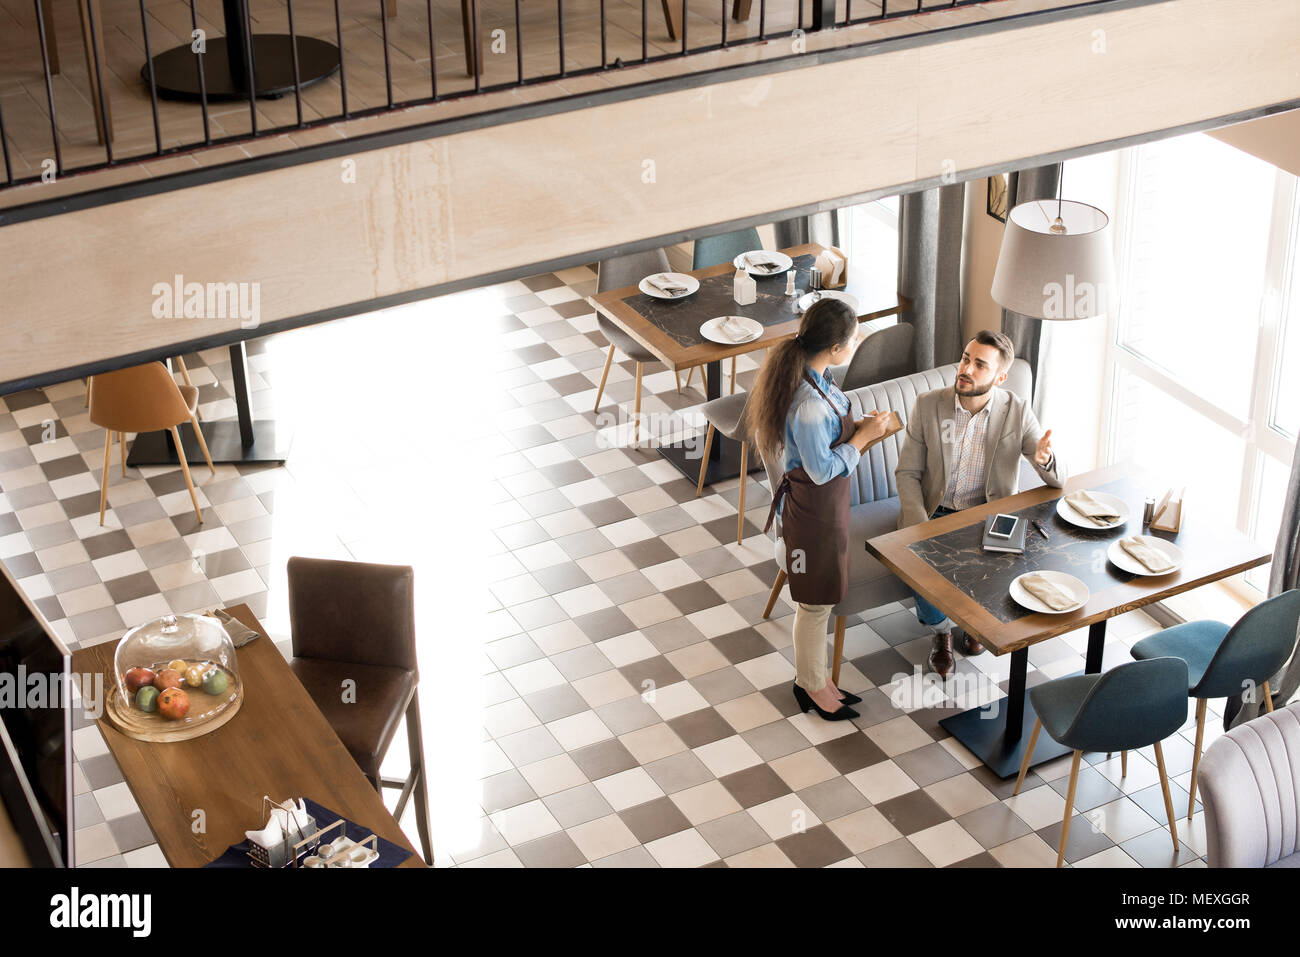 Café d'affaires confortable moderne Photo Stock